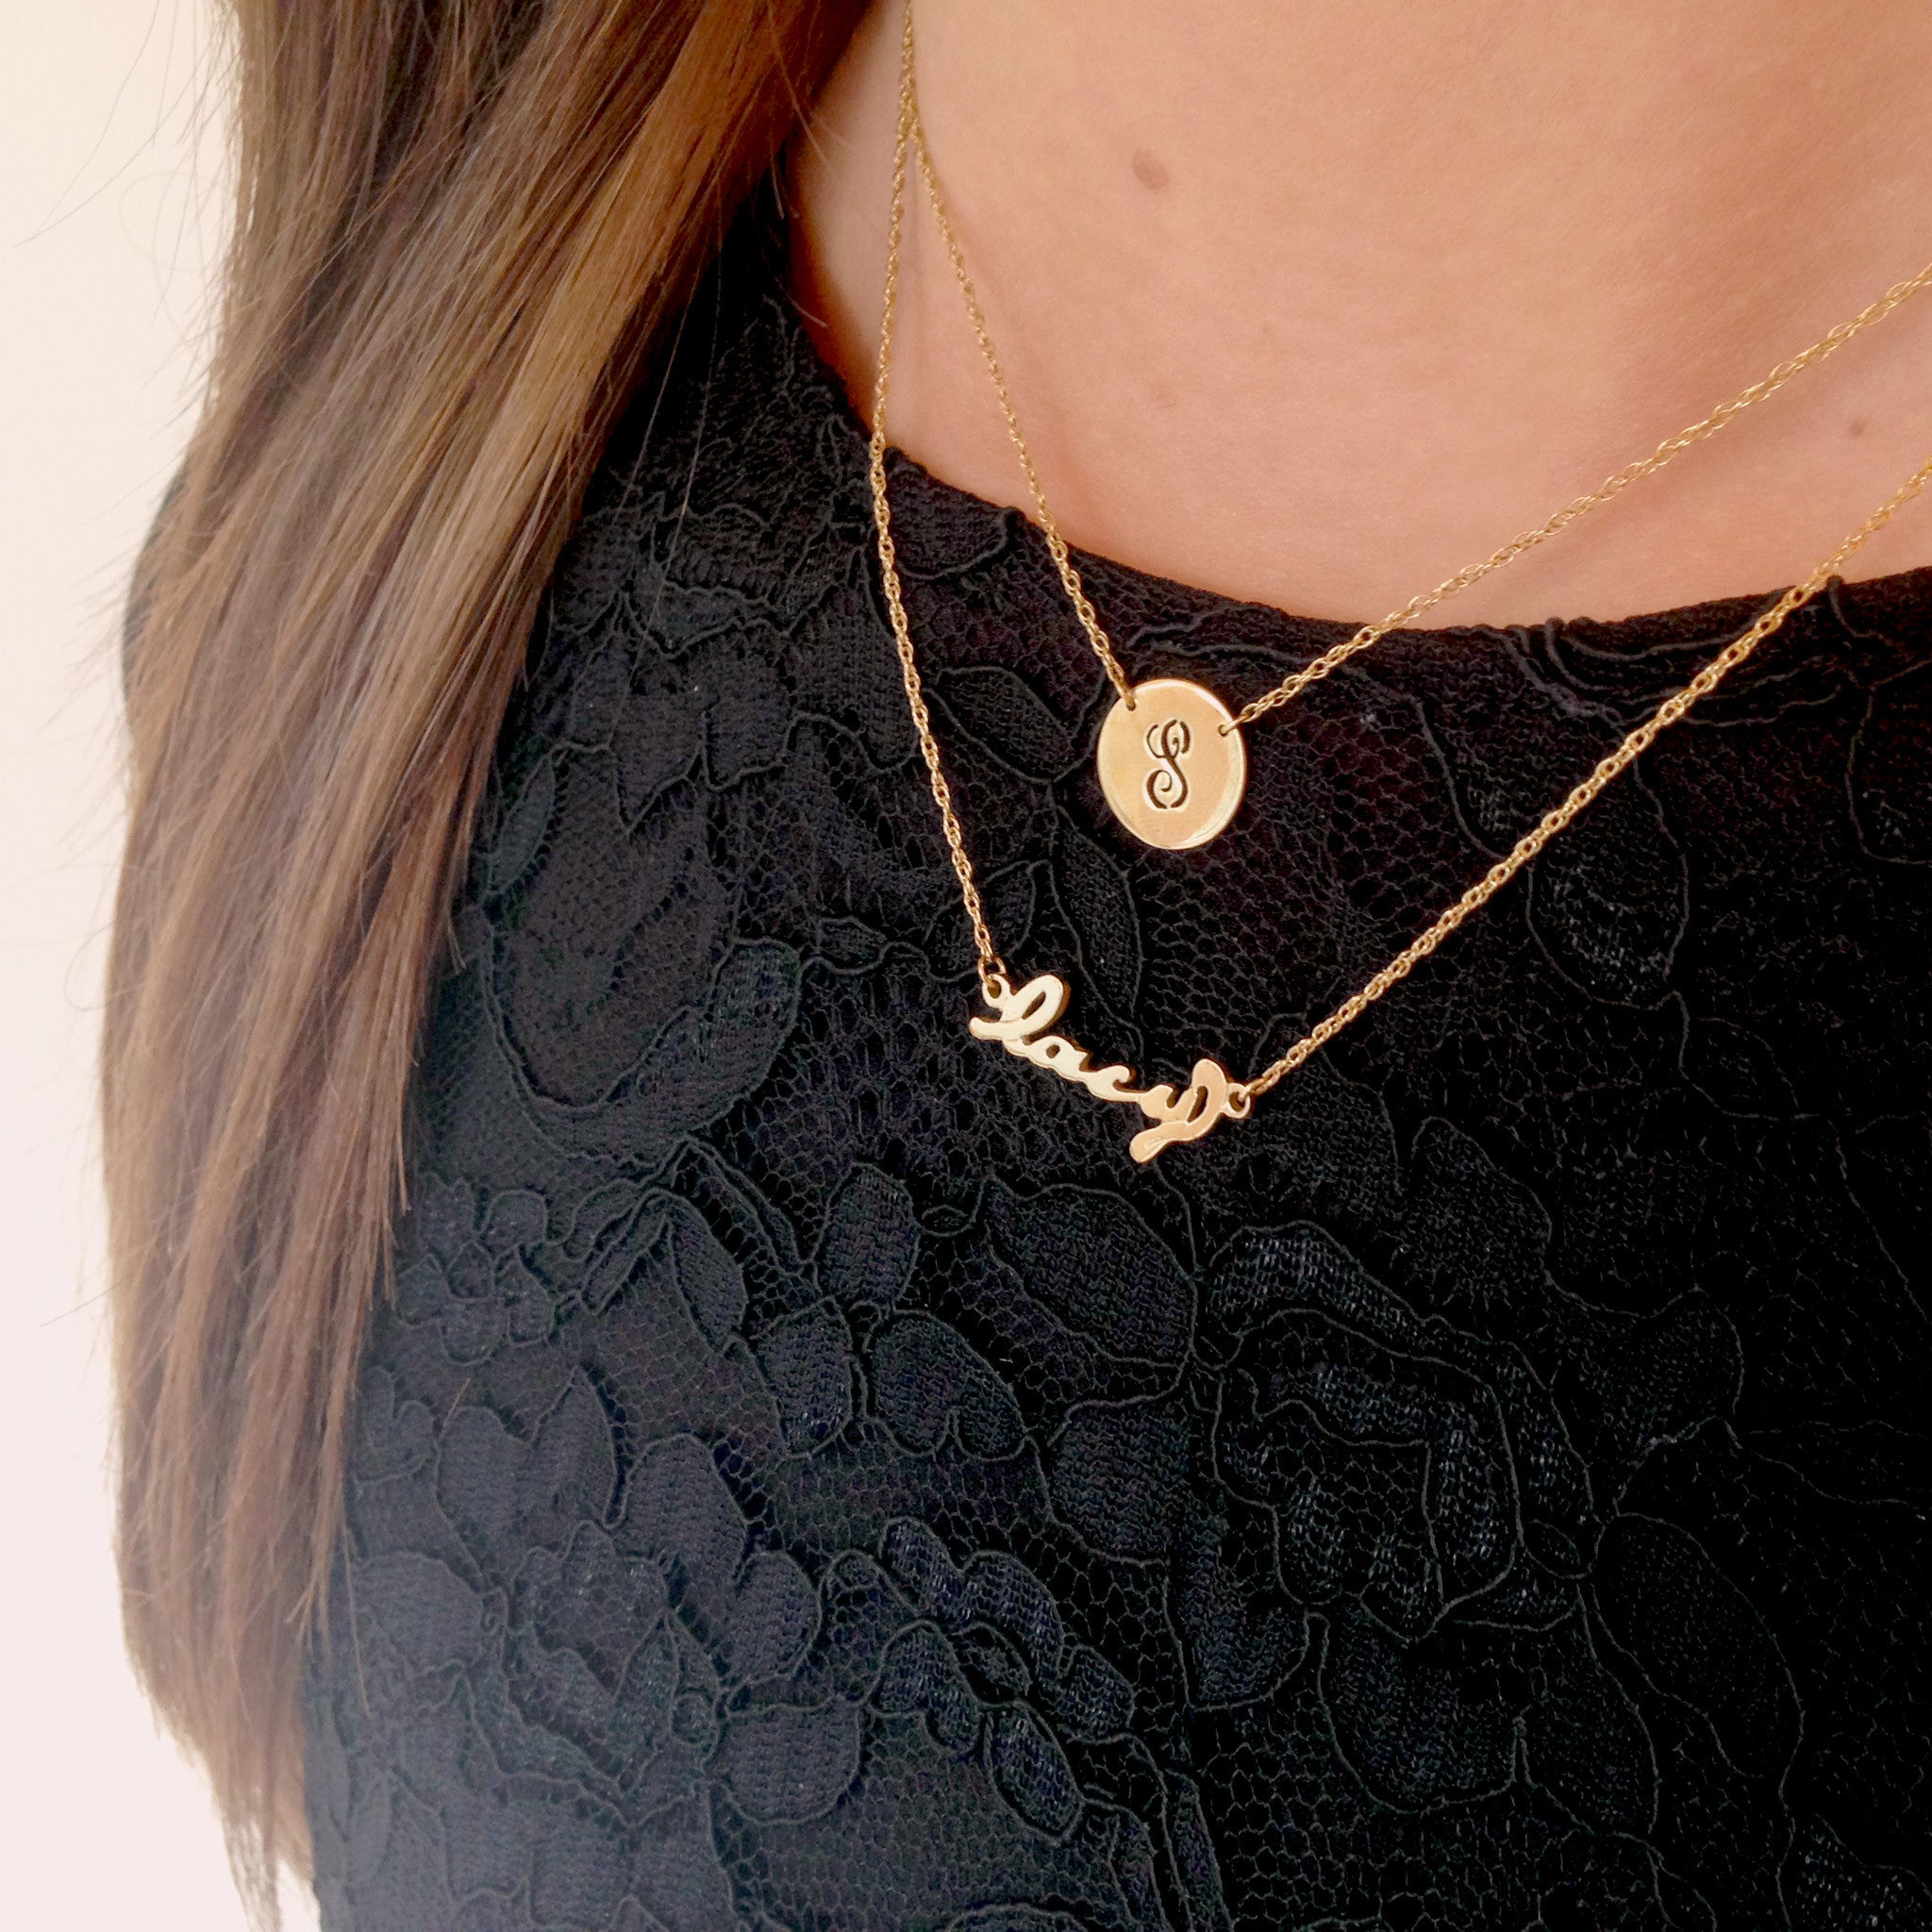 Moon and Lola -Metal Nameplace Necklace on Model